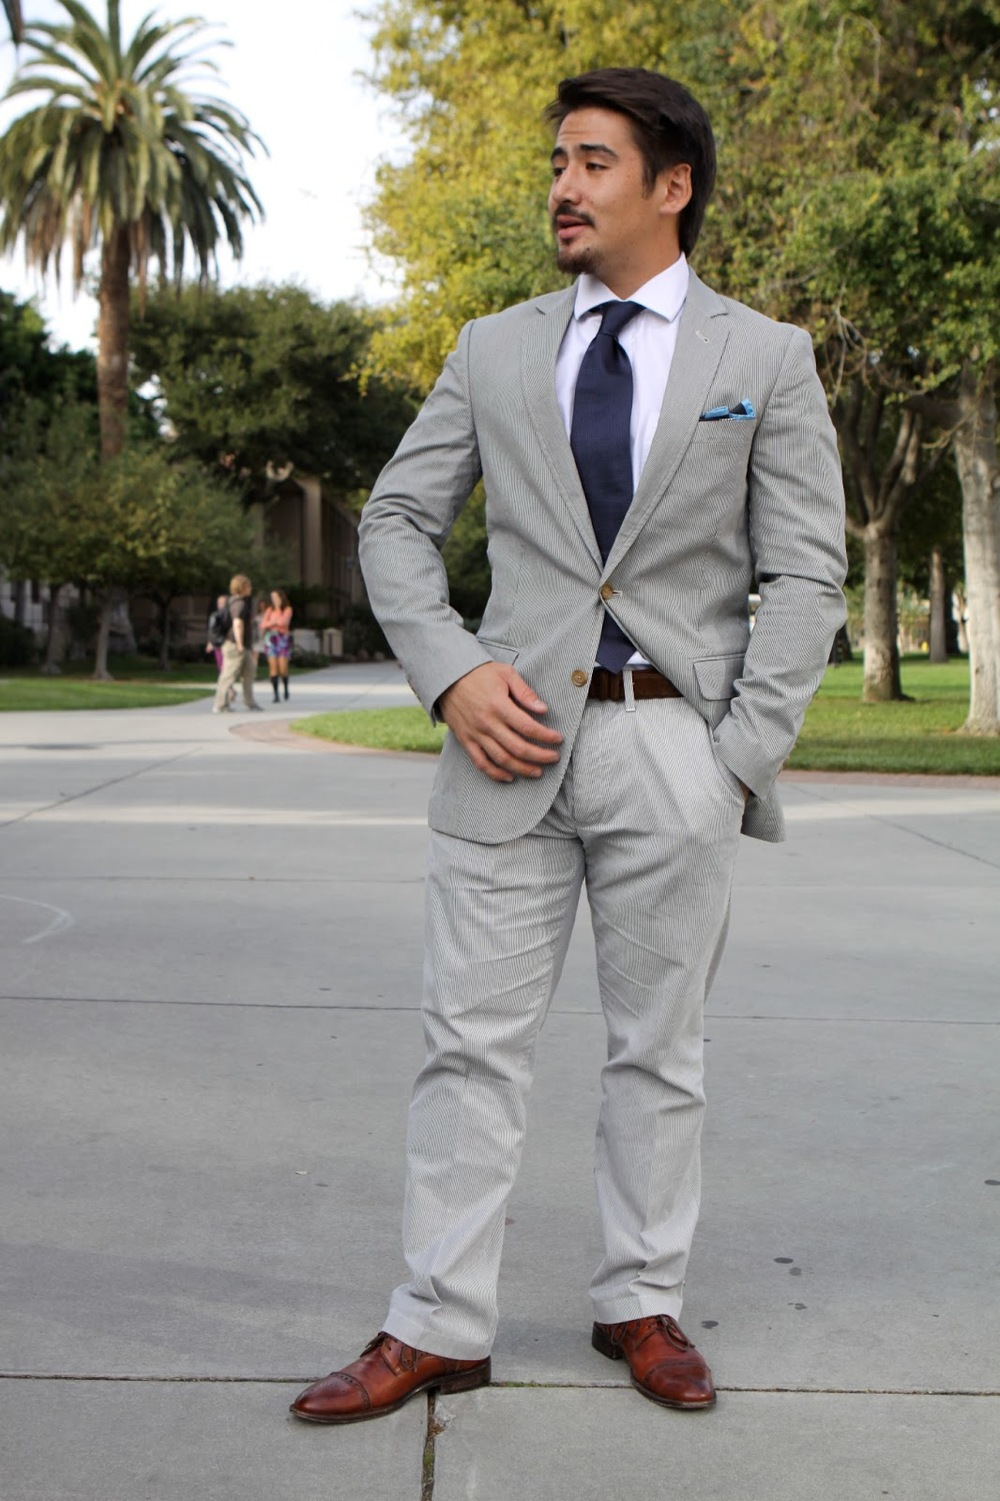 Matt, Santa Clara University student wears a blue white seersucker suit paired with a spread collar shirt, a microprint blue tie and a pair of brown brogue oxfords